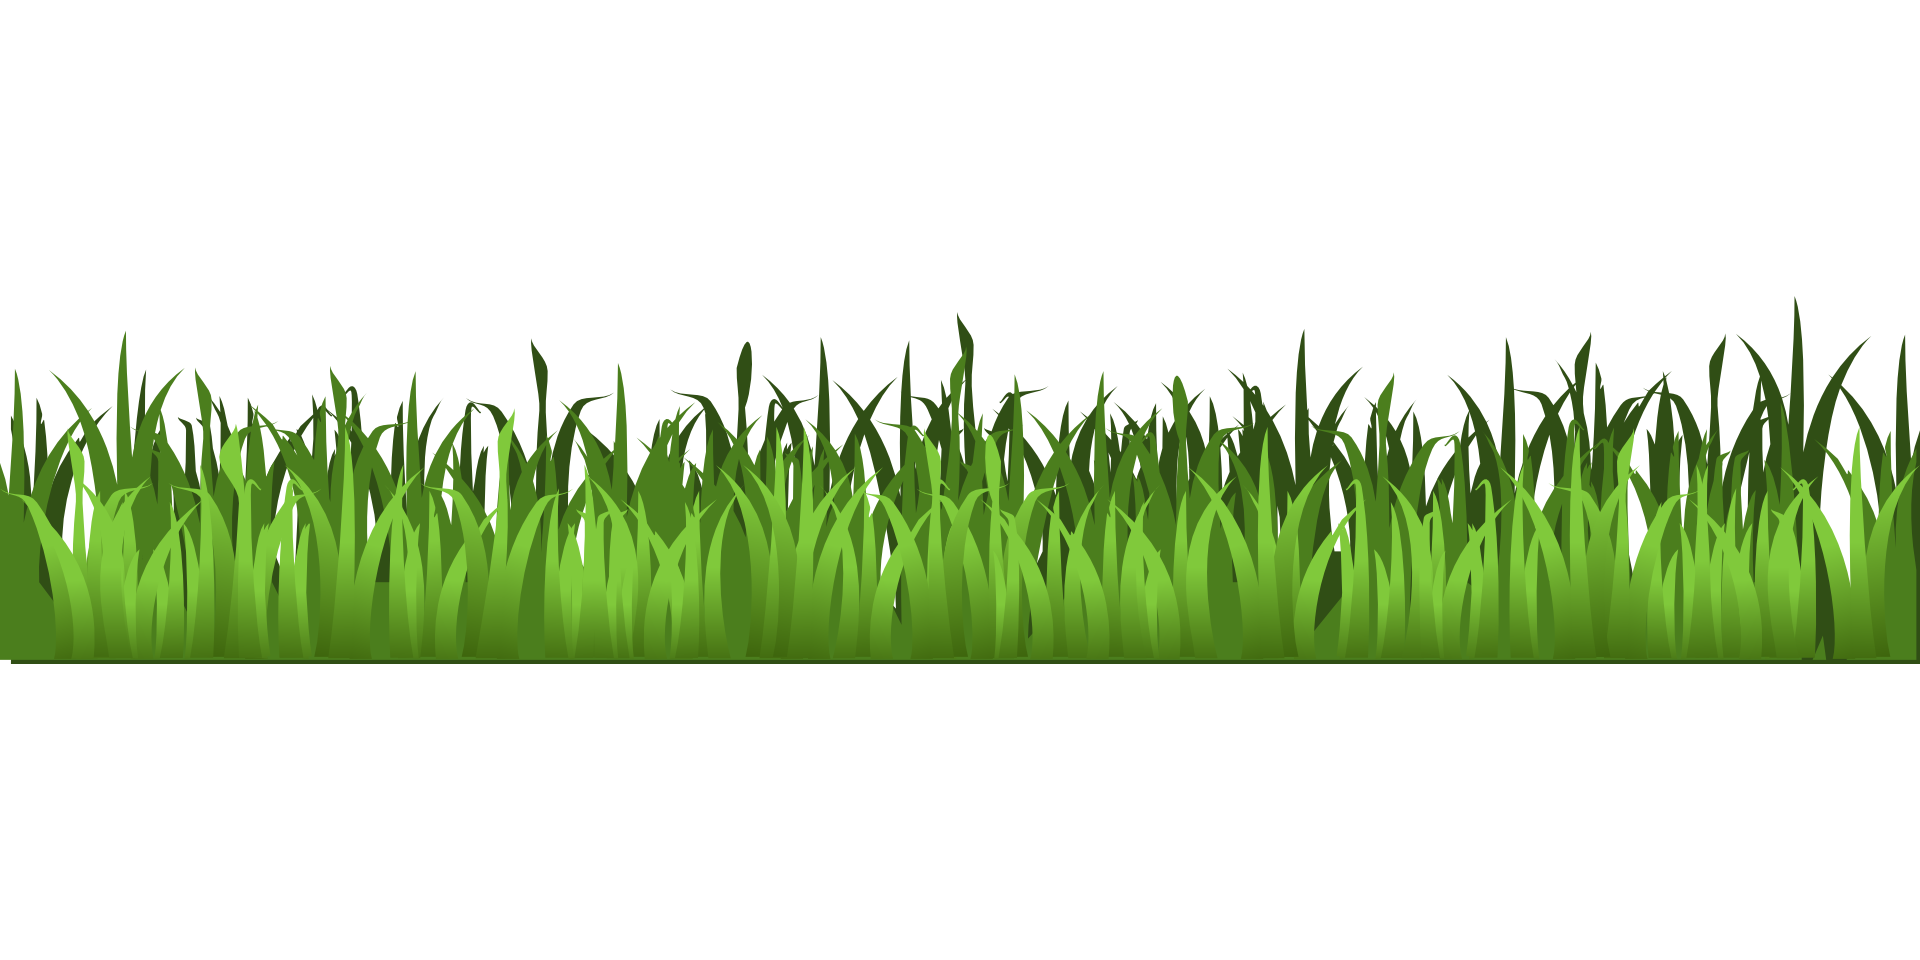 Lawn clipart #12, Download drawings